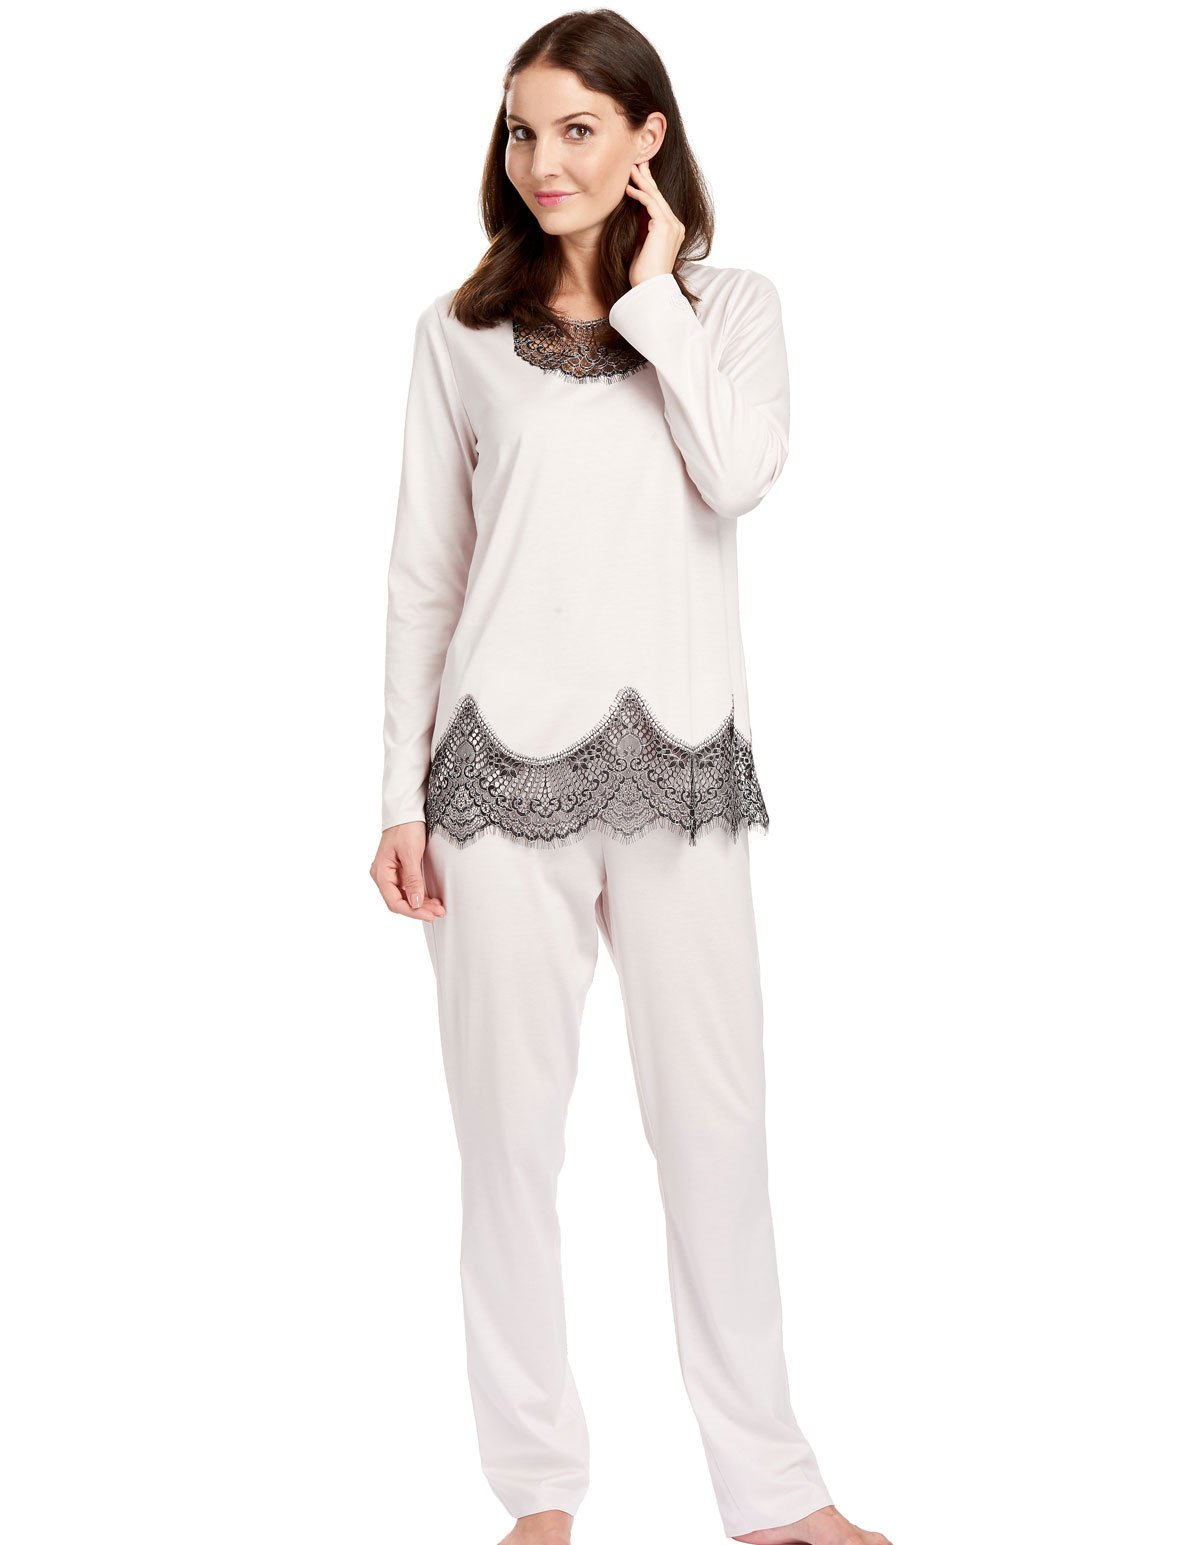 Feraud 3181003-11696 Women's Sail Away Beige Lace 100% Cotton Pajama Set 12